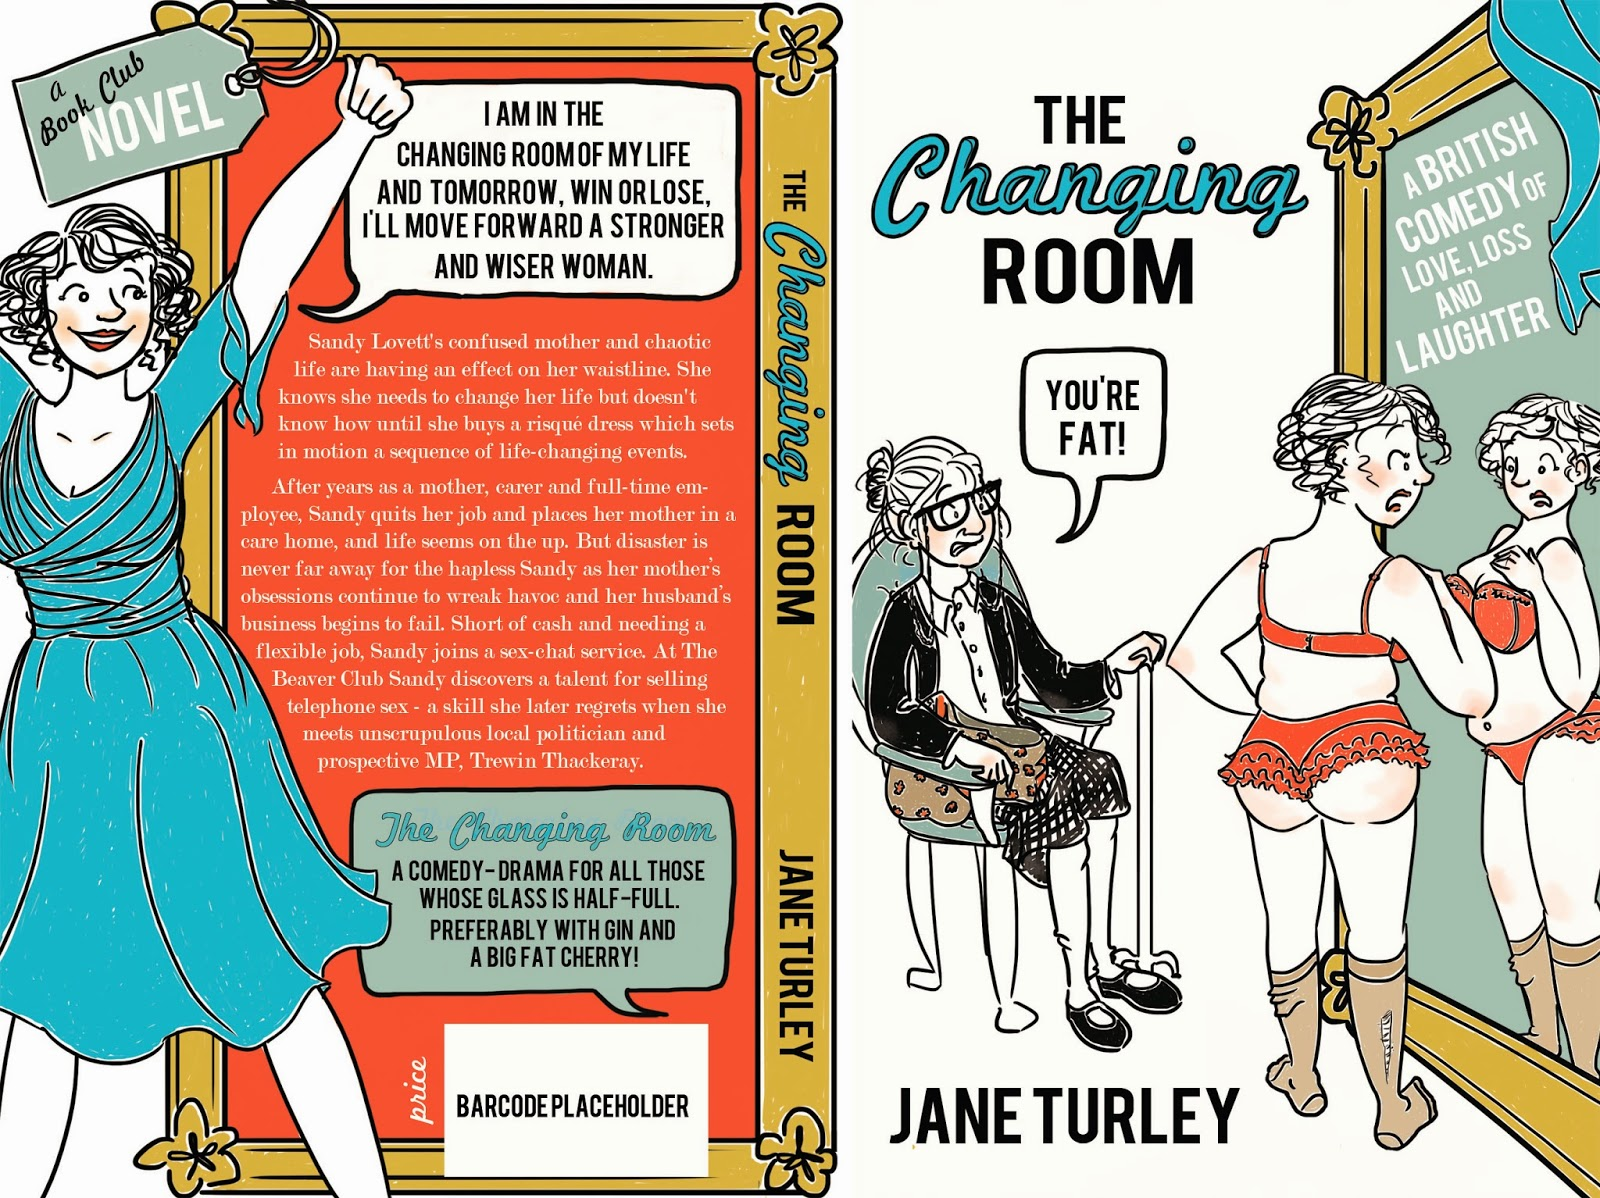 The Changing Room by Jane Turley hardback design